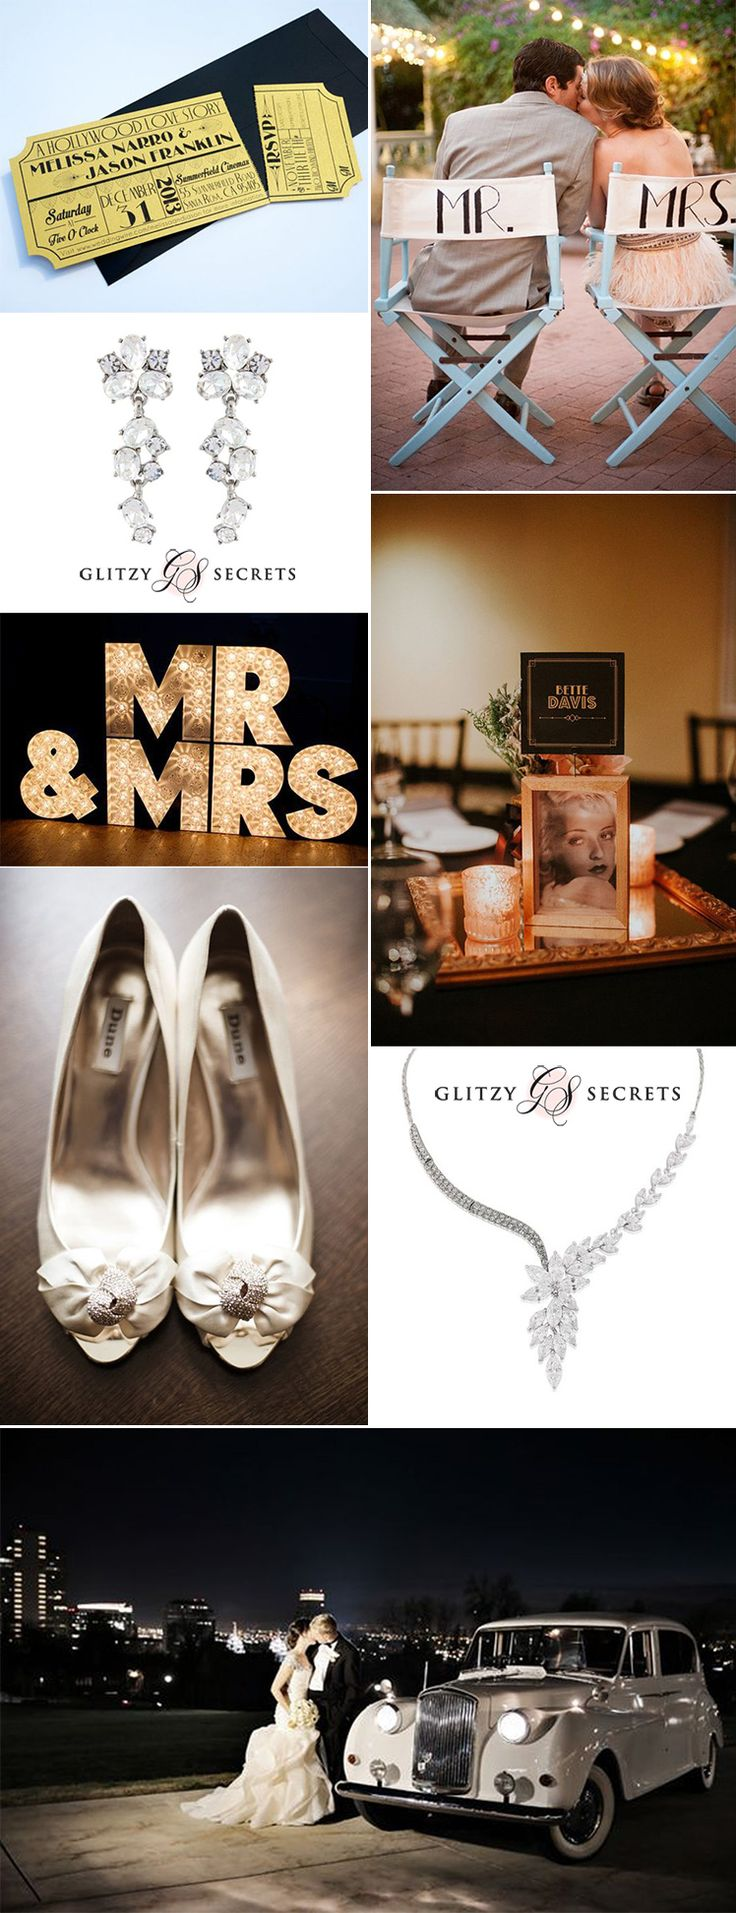 When it comes to glamorous wedding themes, an old Hollywood movie inspired day has to be at the top of any list...